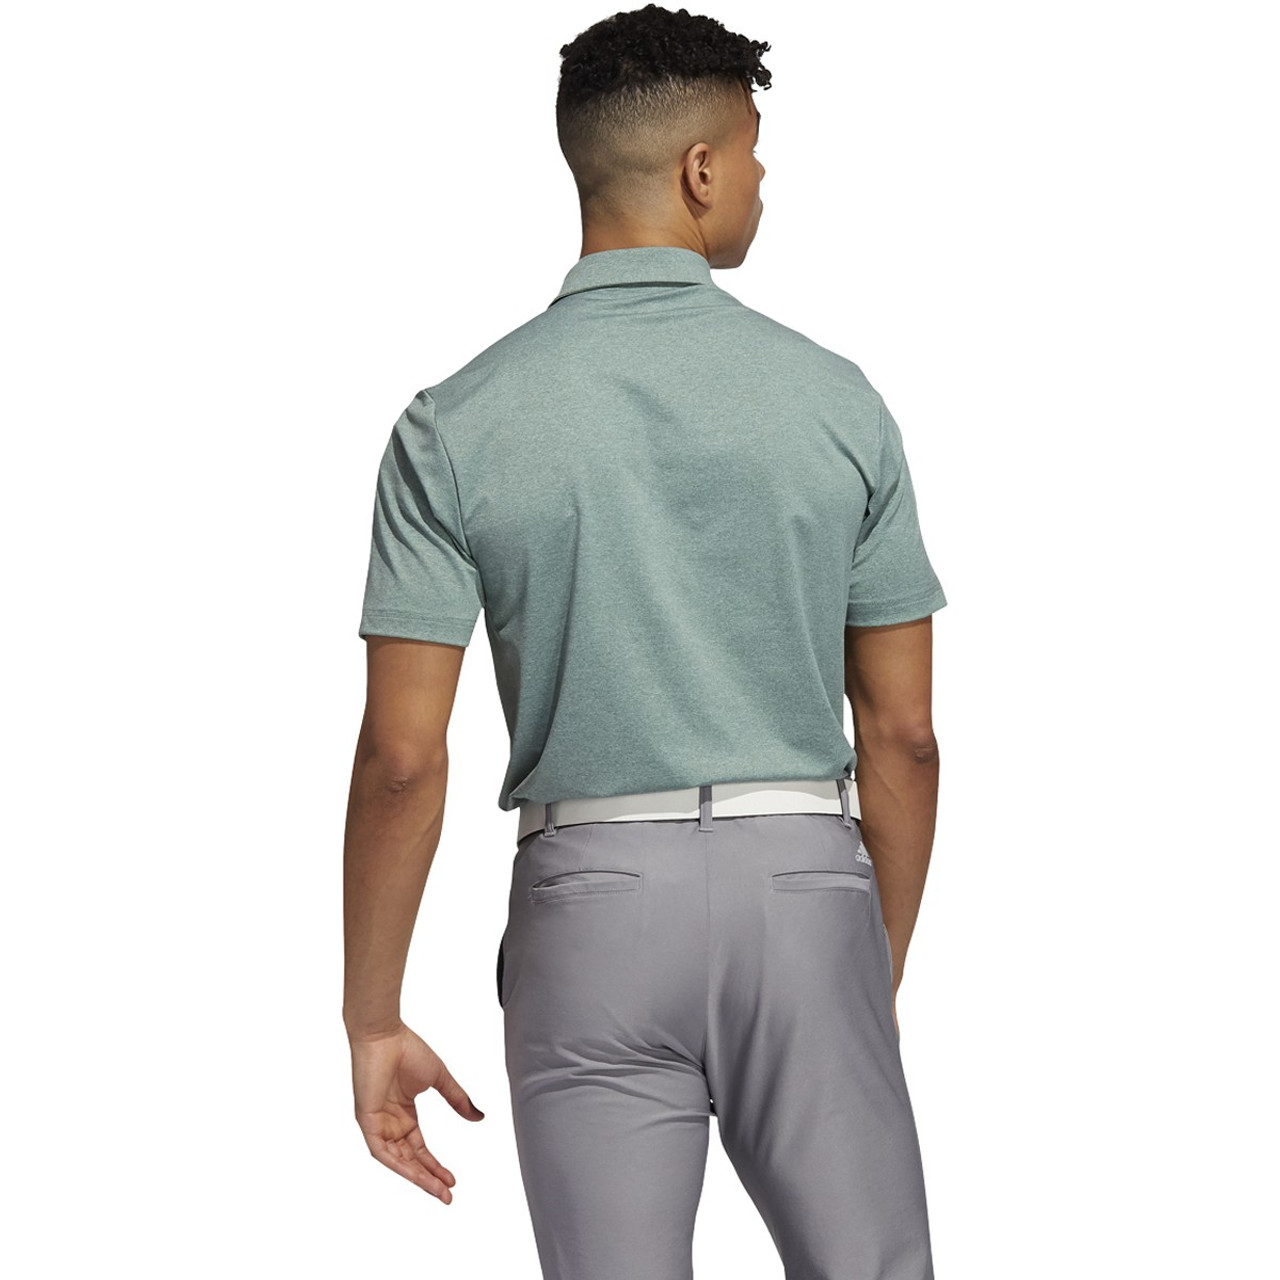 Adidas Ultimate 365 2.0 Heather Polo - Tech Emerald